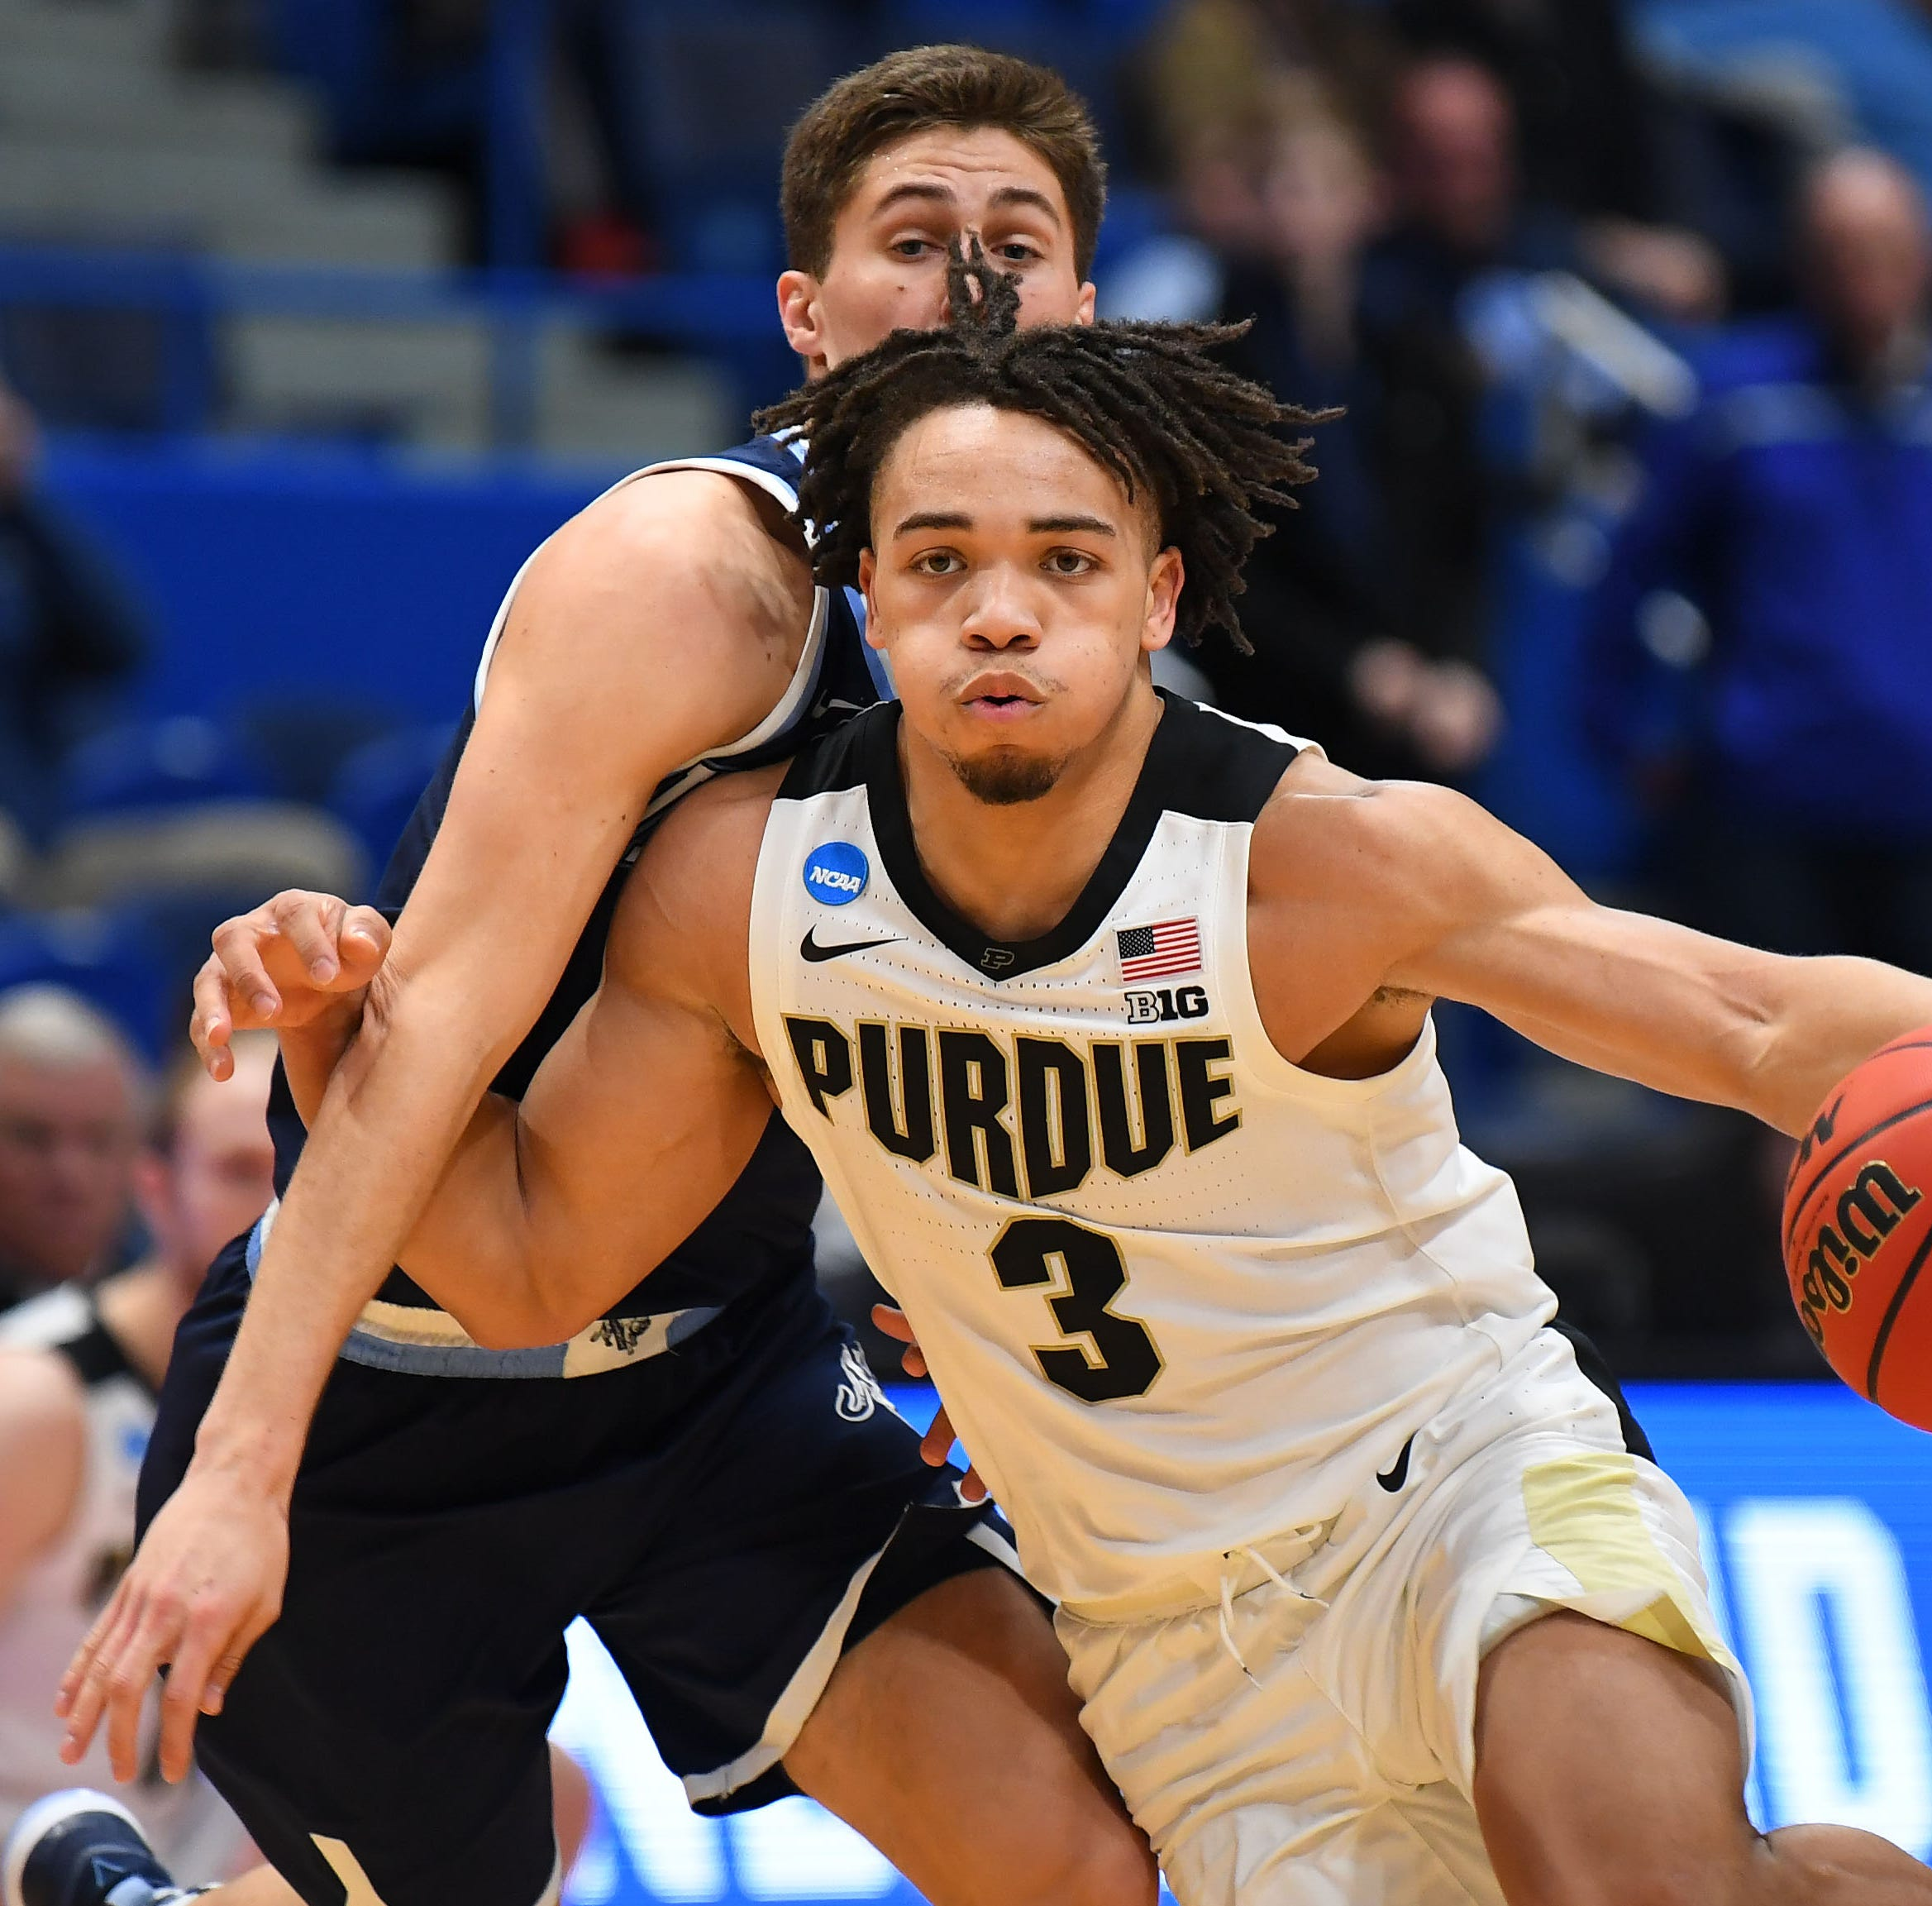 NCAA Tournament 2019: How to watch, stream Purdue vs. Tennessee basketball